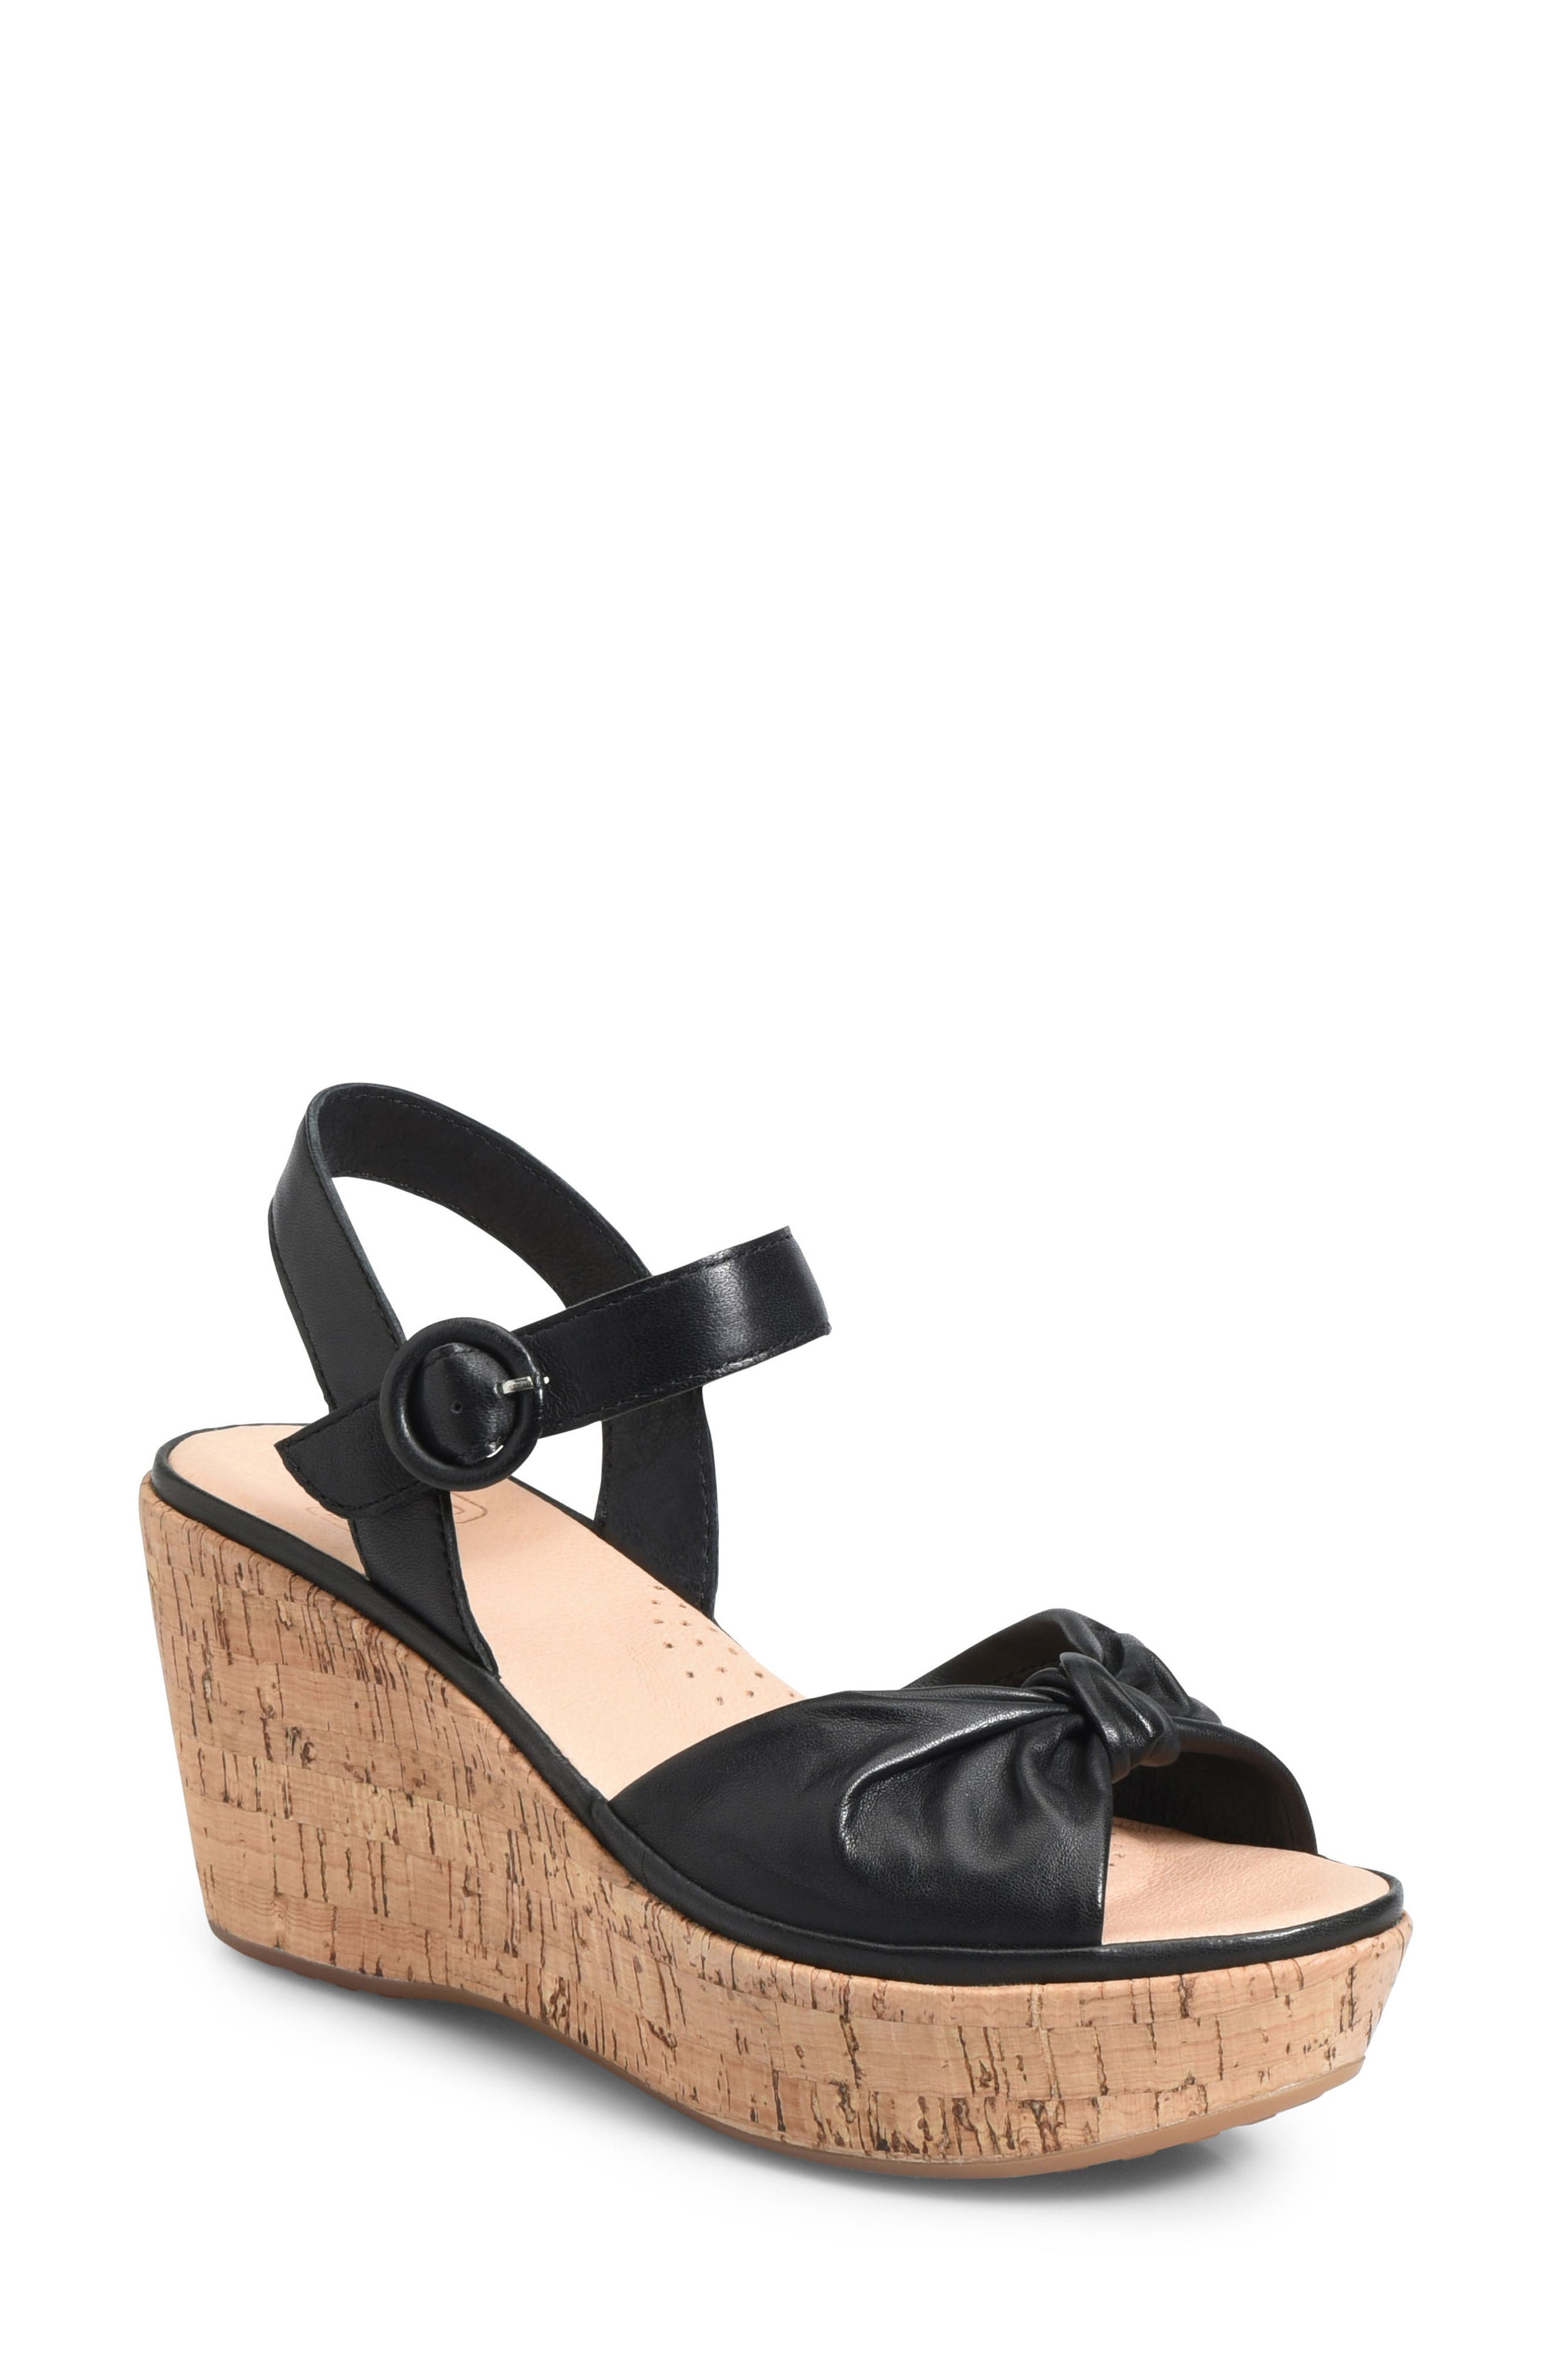 Heavenly Platform Wedge Sandal,                         Main,                         color, BLACK LEATHER